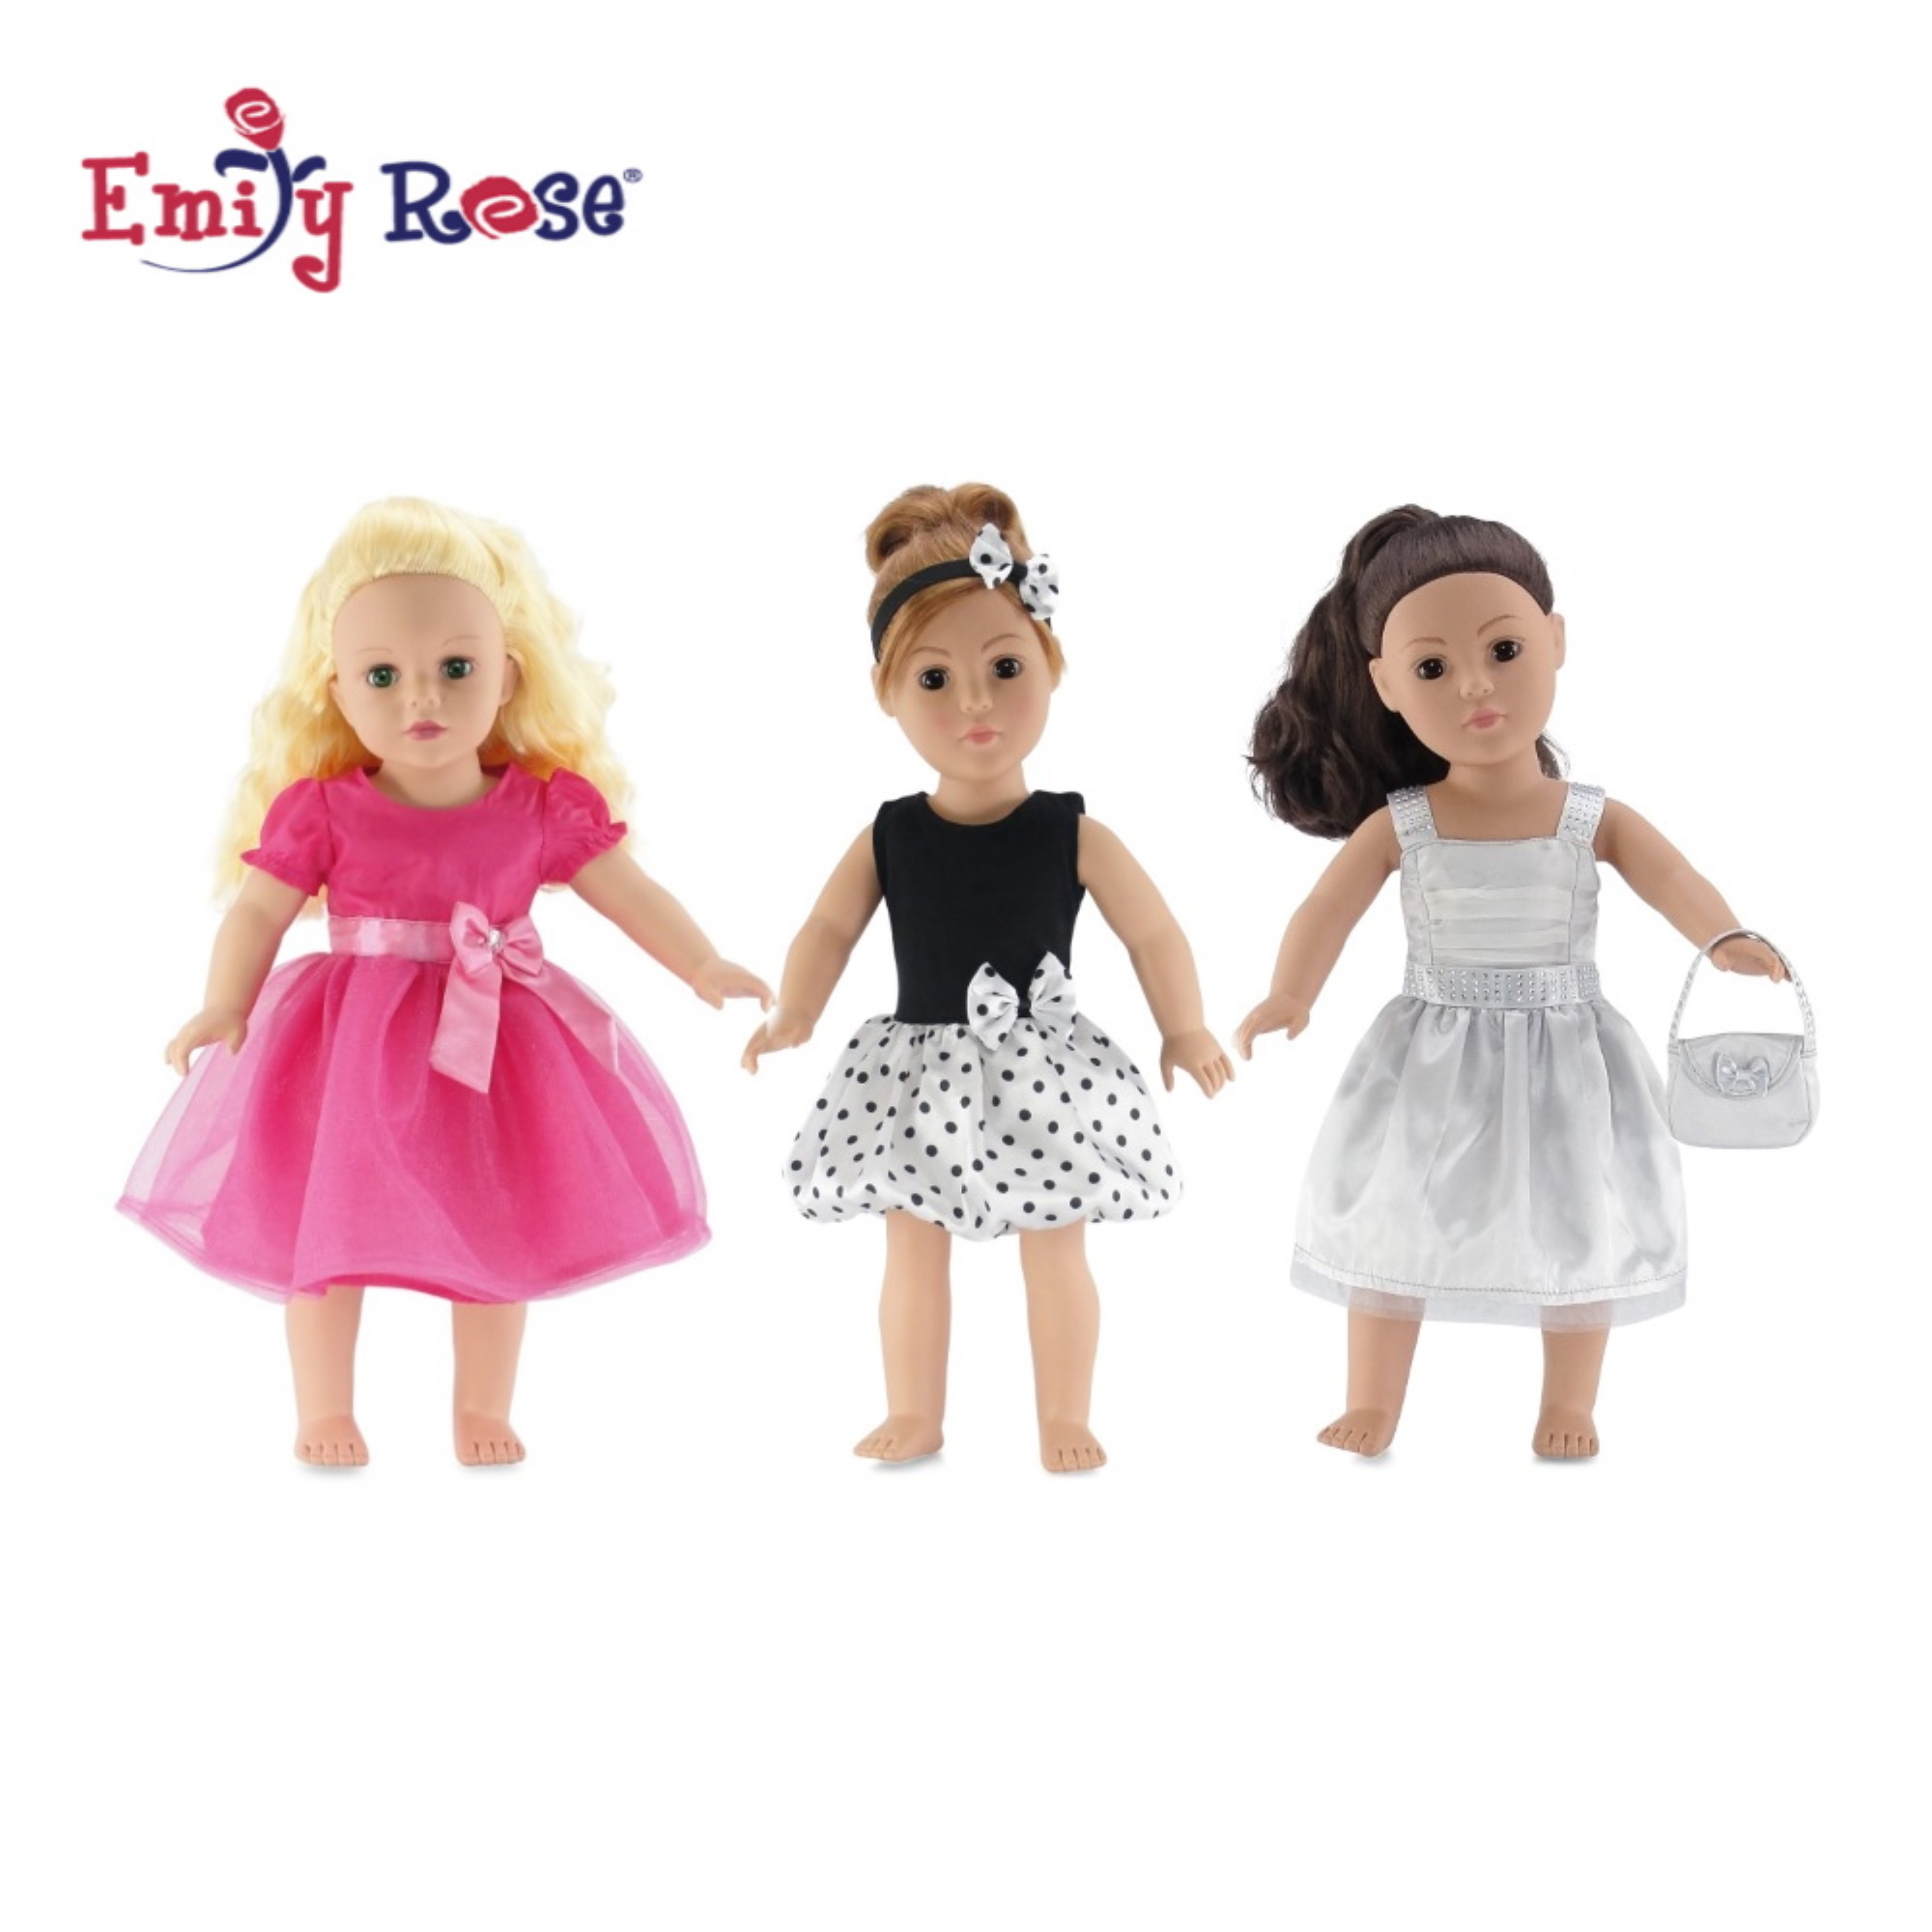 MATCHING DRESS FOR A DOLL WHAT A DOLL RUFFLED PINK PLAID DRESS 6-6X 10-12